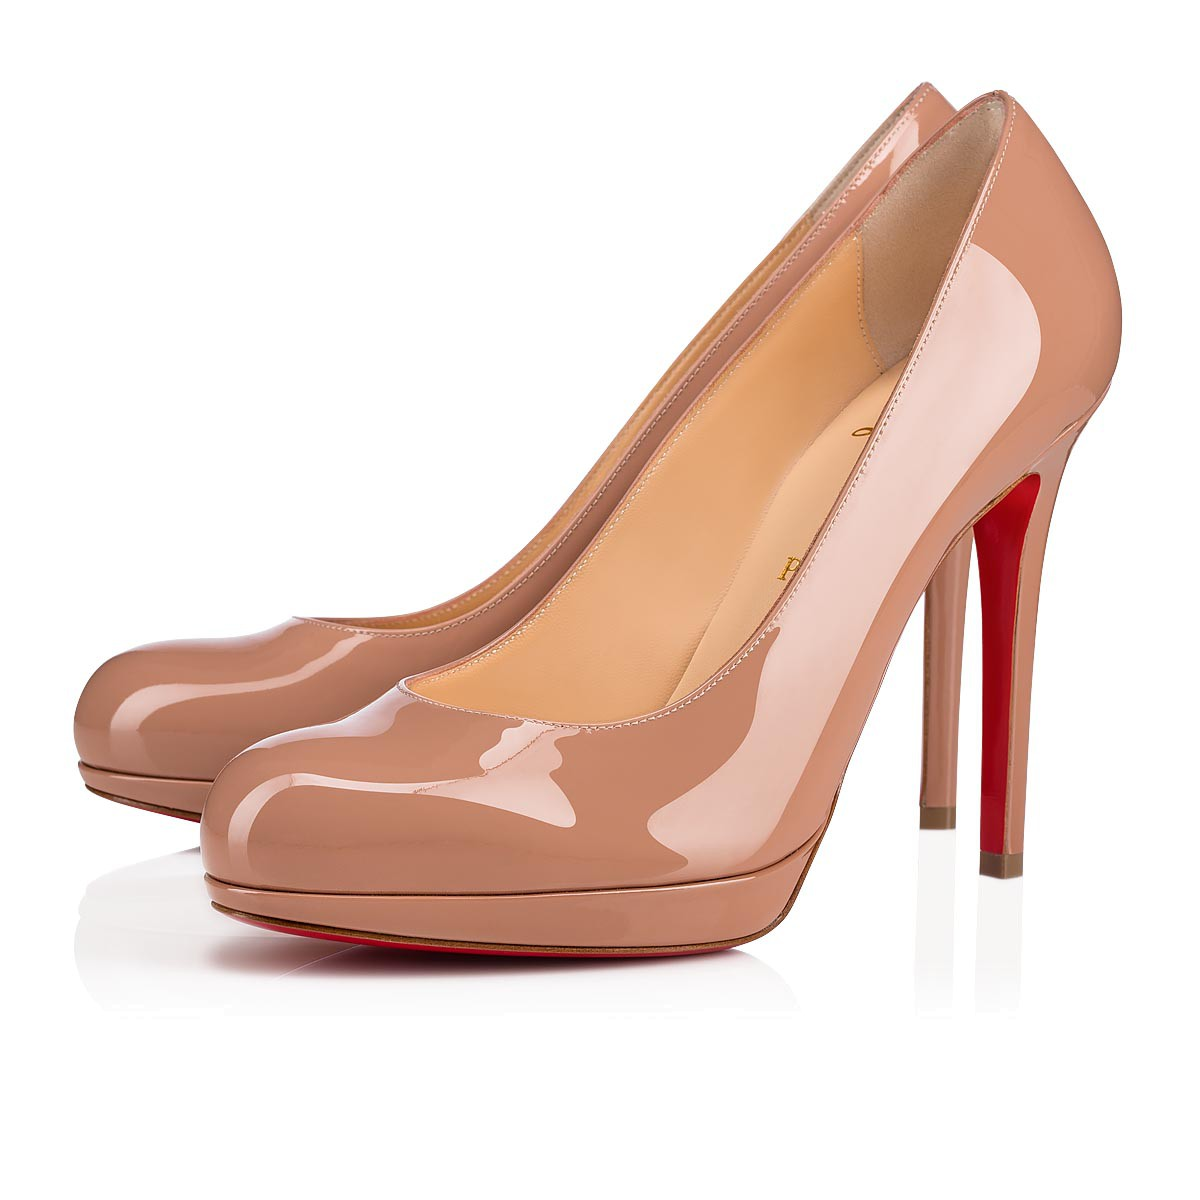 meet 611ee b45a1 New Simple Pump 120 Nude Patent Leather - Women Shoes - Christian Louboutin